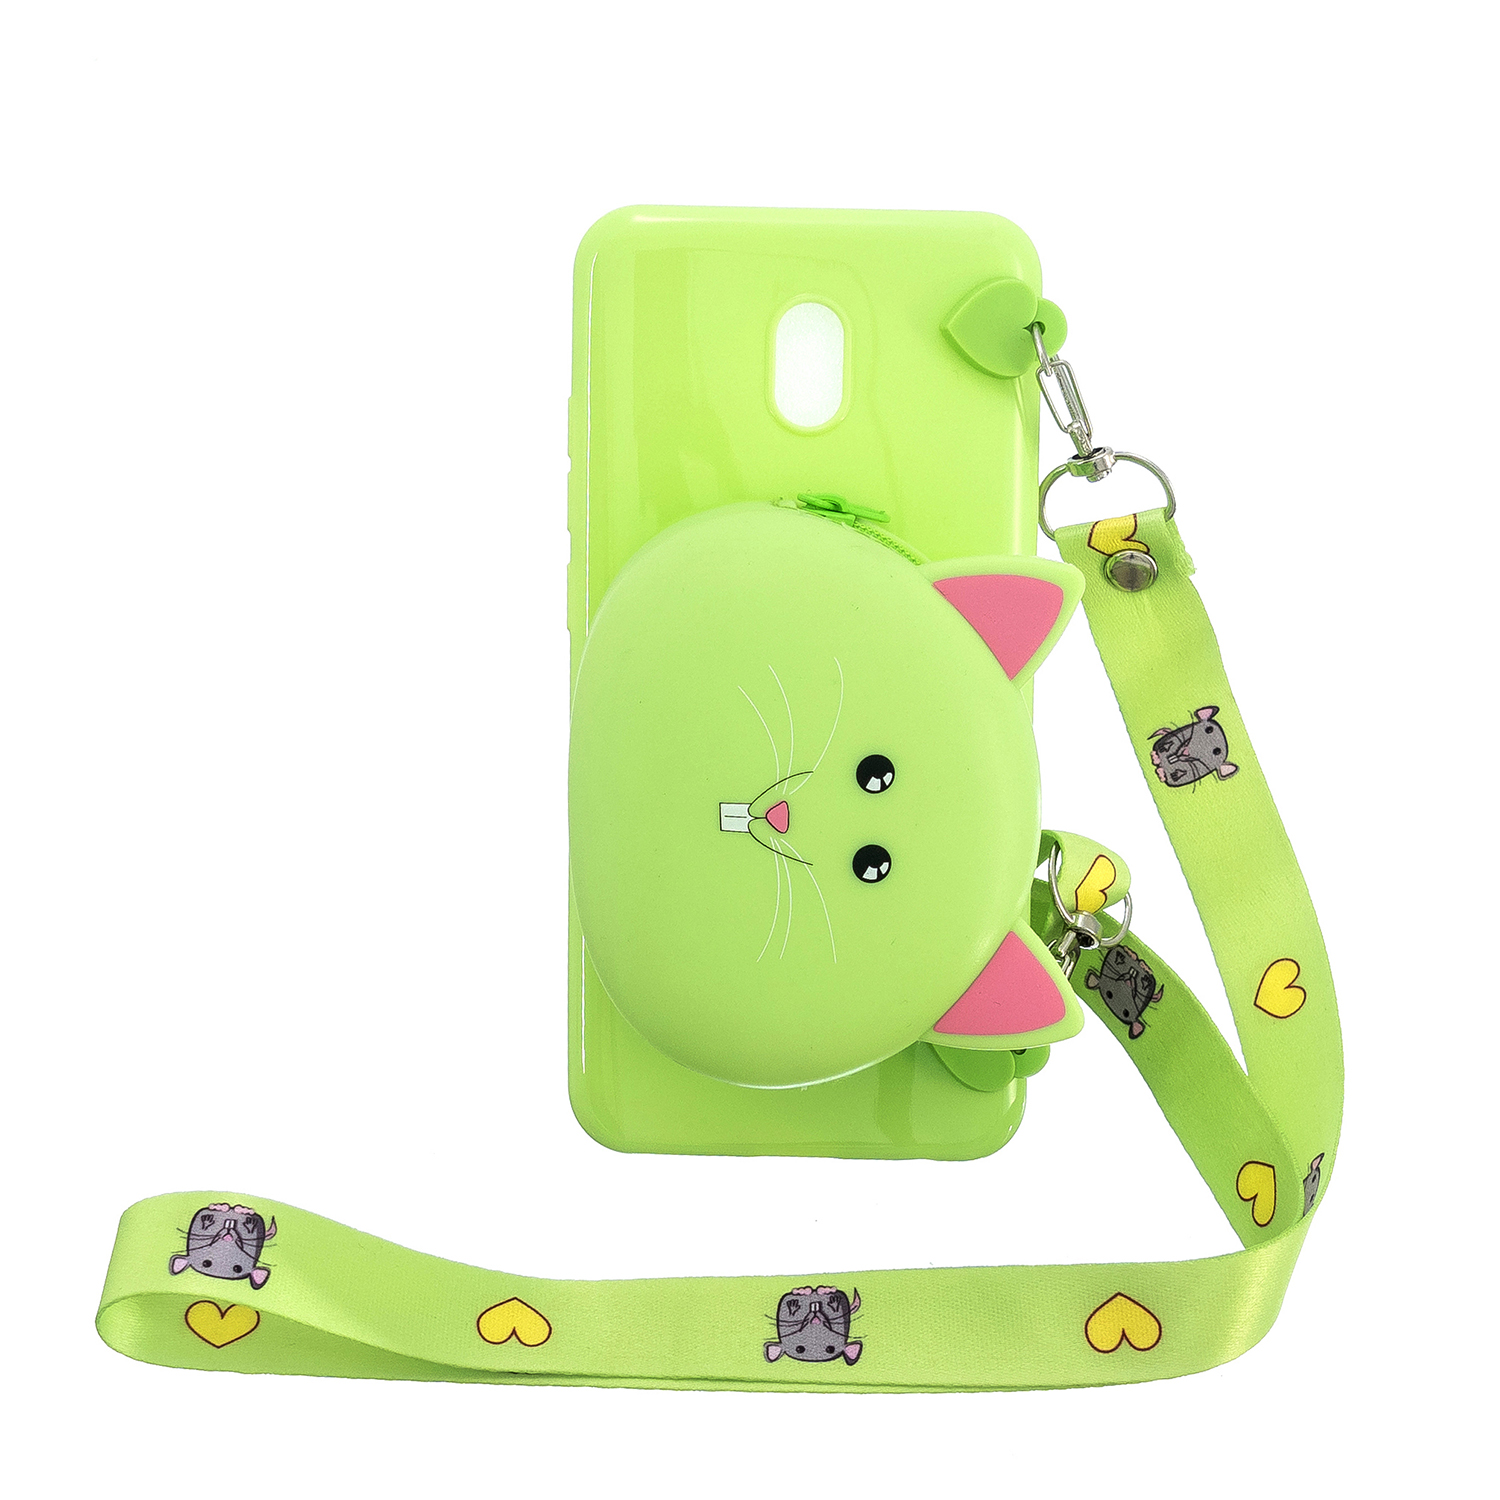 For Redmi 8/Redmi 8A Case Mobile Phone Shell Shockproof Cellphone TPU Cover with Cartoon Cat Pig Panda Coin Purse Lovely Shoulder Starp  Green